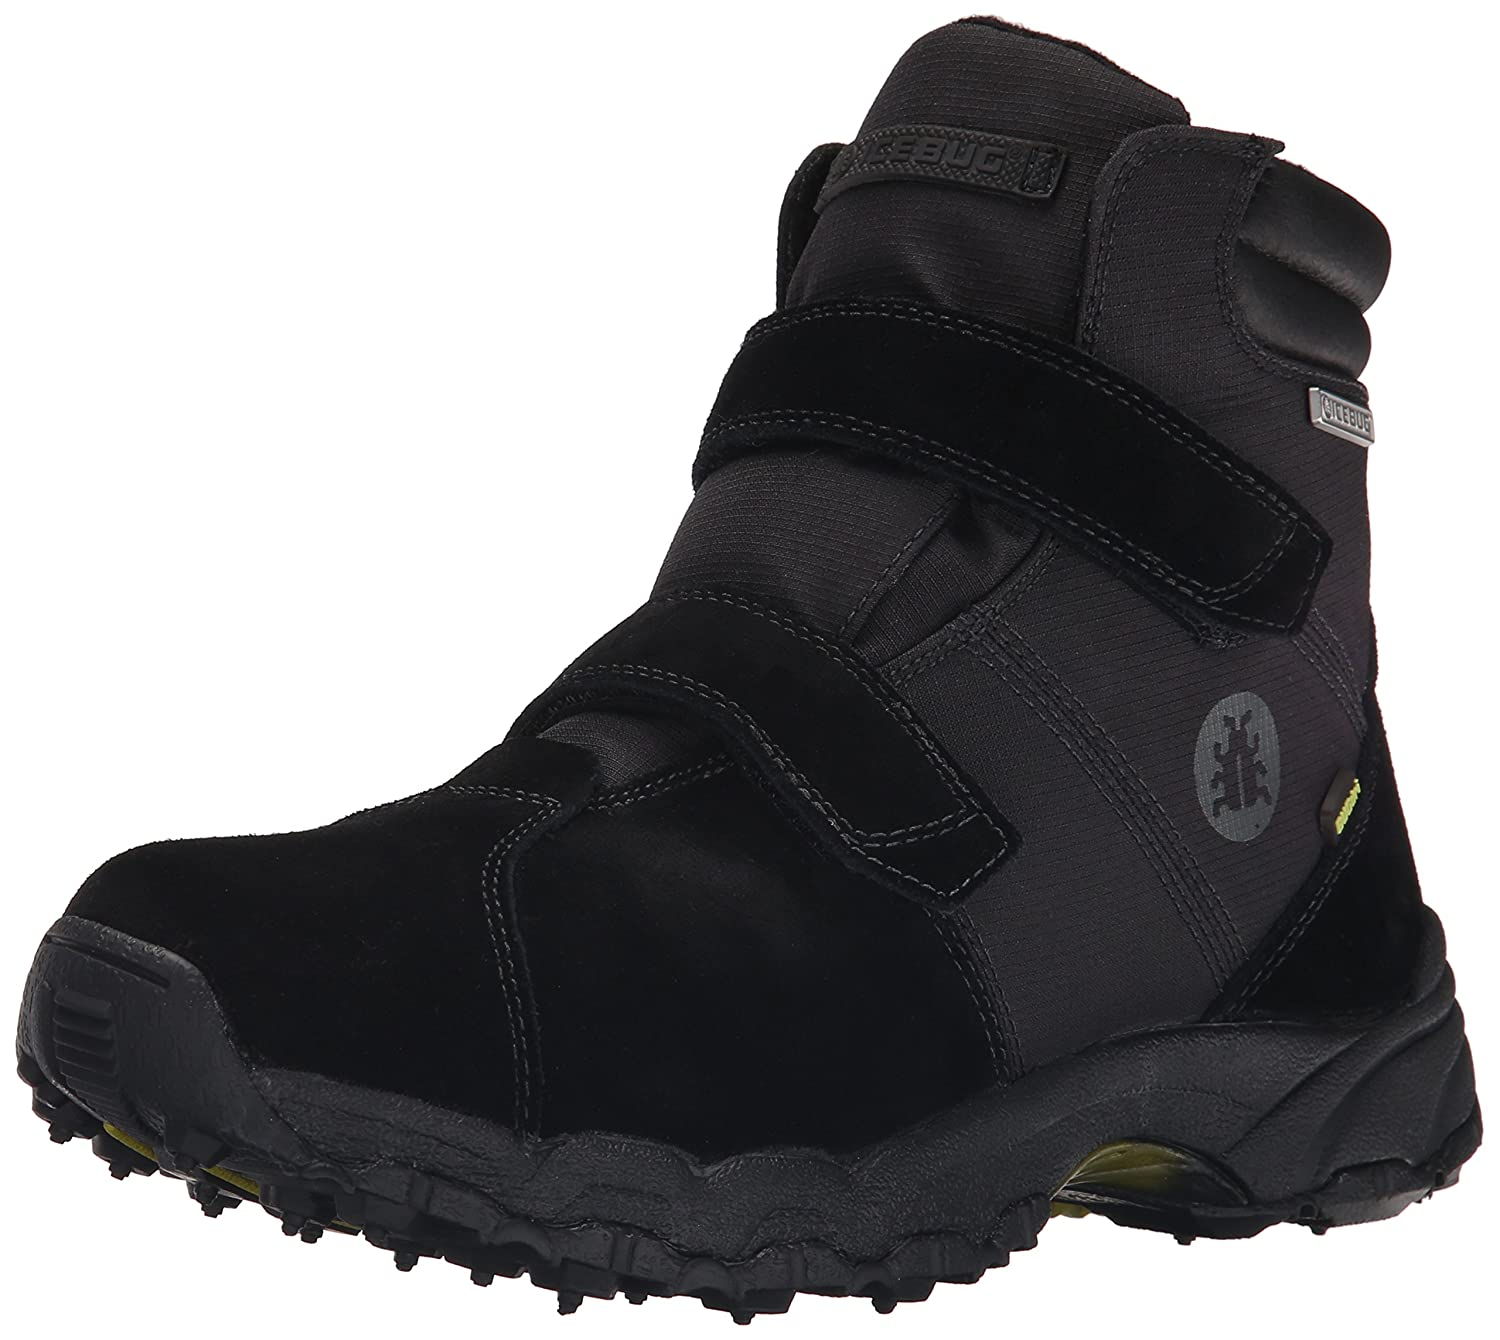 Women's Ryum2 BUGrip Studded Traction Winter Boot with Velcro Closure